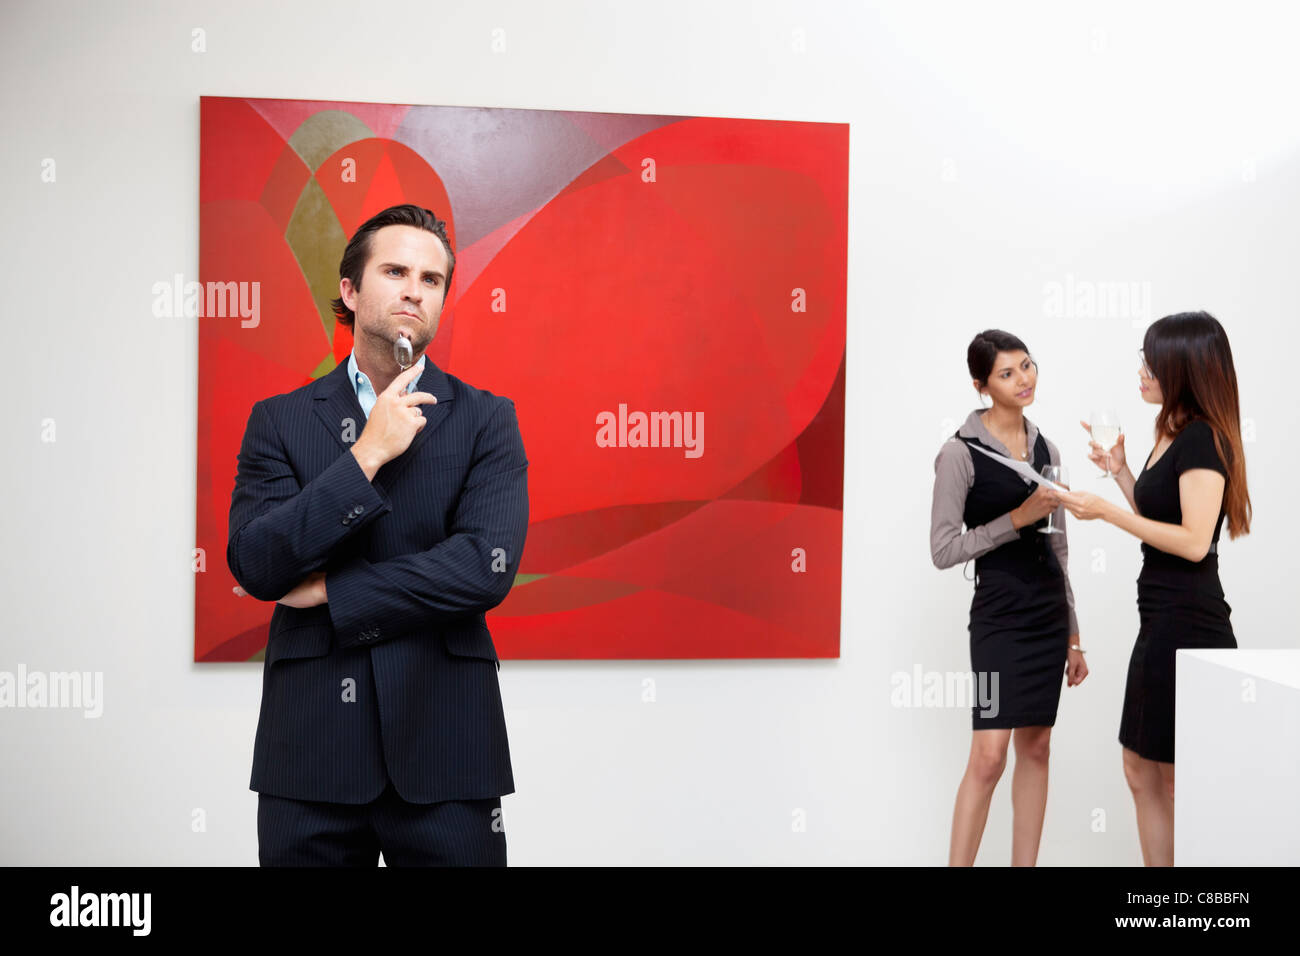 Young man thinking with two women talking in background in art gallery - Stock Image